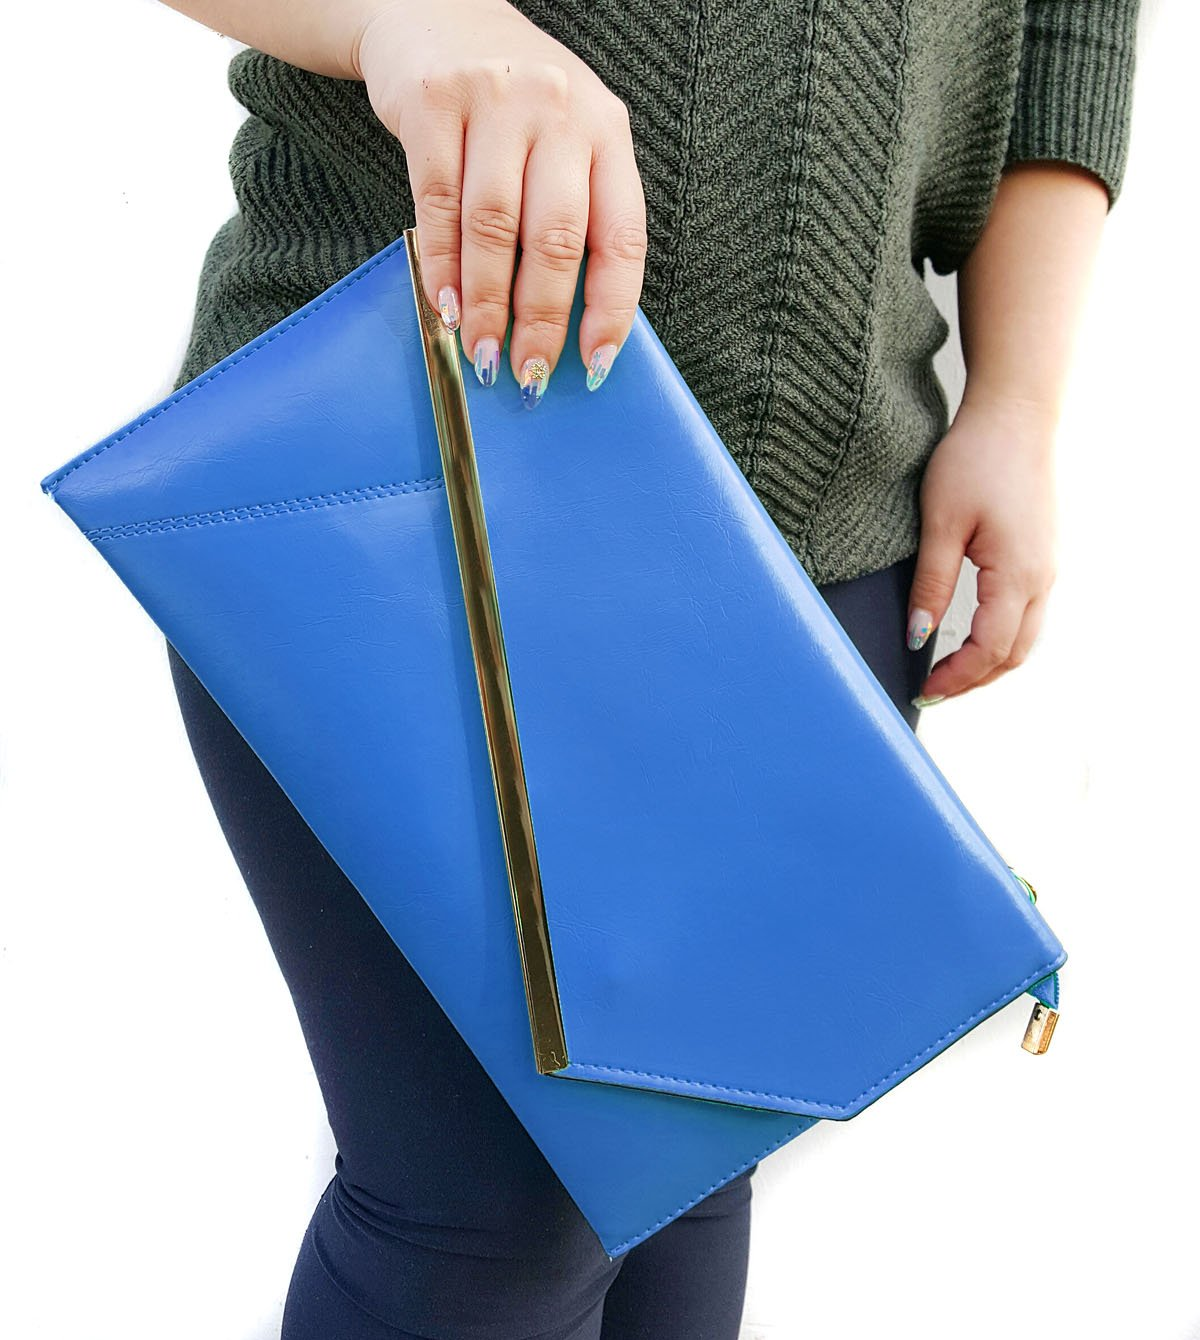 BMC Fashionably Chic Turquoise Faux Leather Gold Metal Accent Envelope Style Statement Clutch by b.m.c (Image #4)